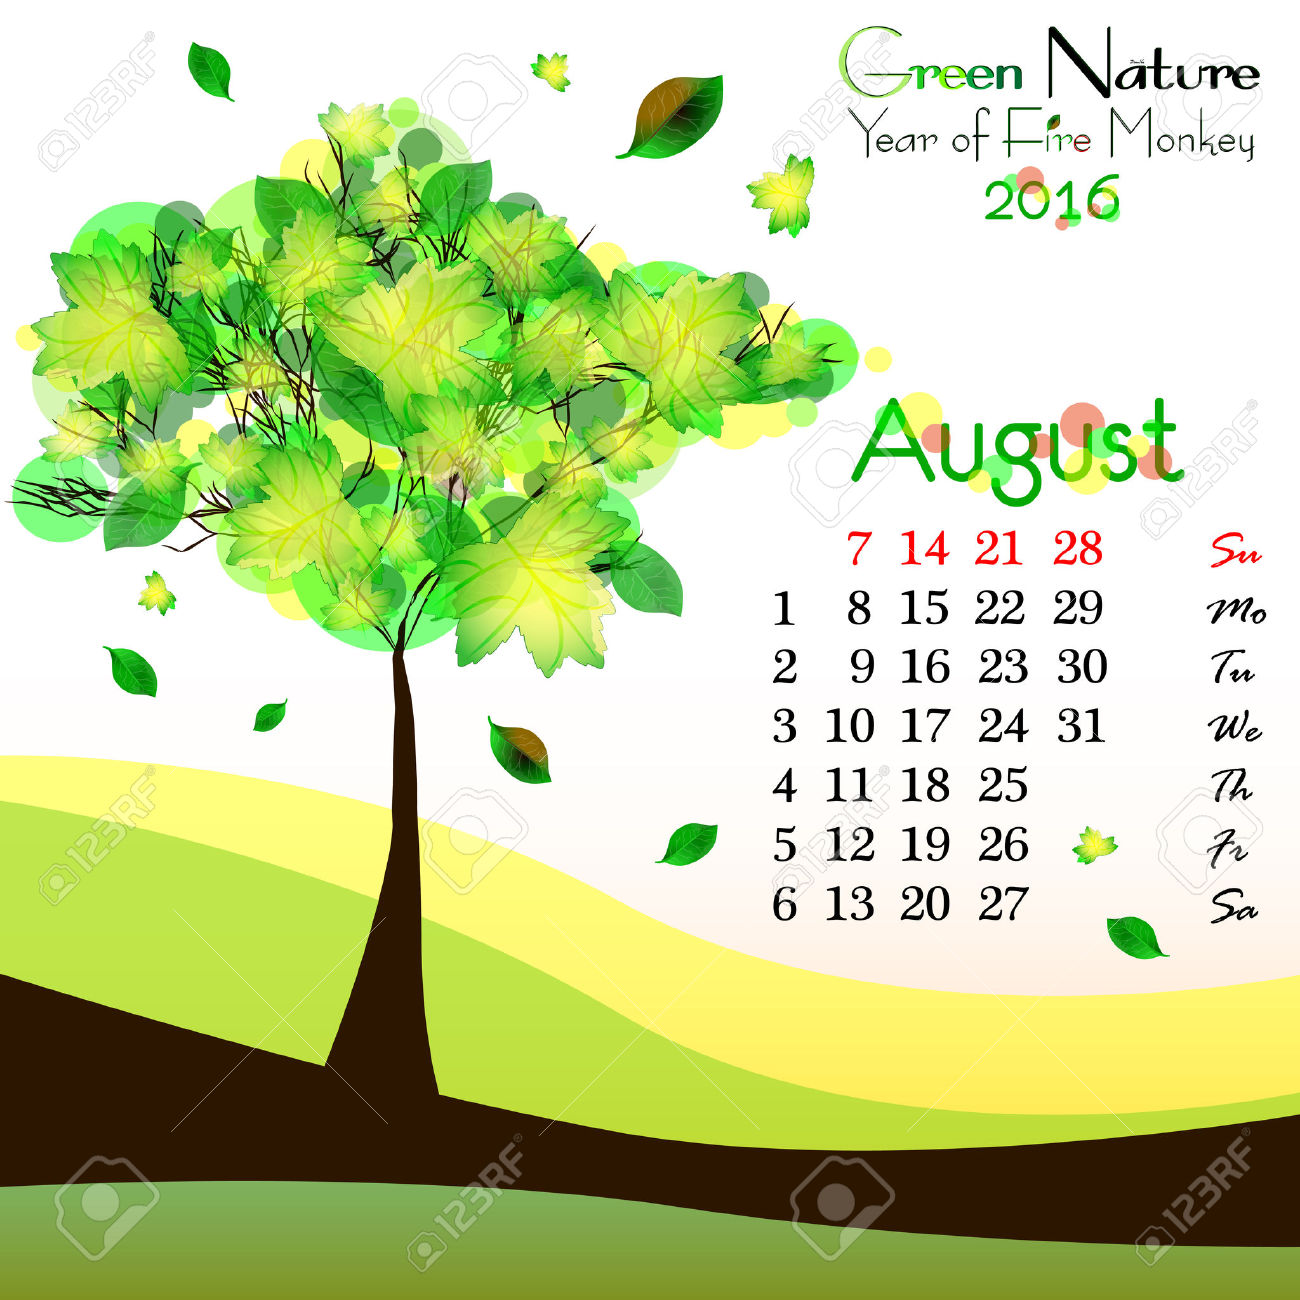 Abstract Nature Background With Green Tree And Dates Of August.